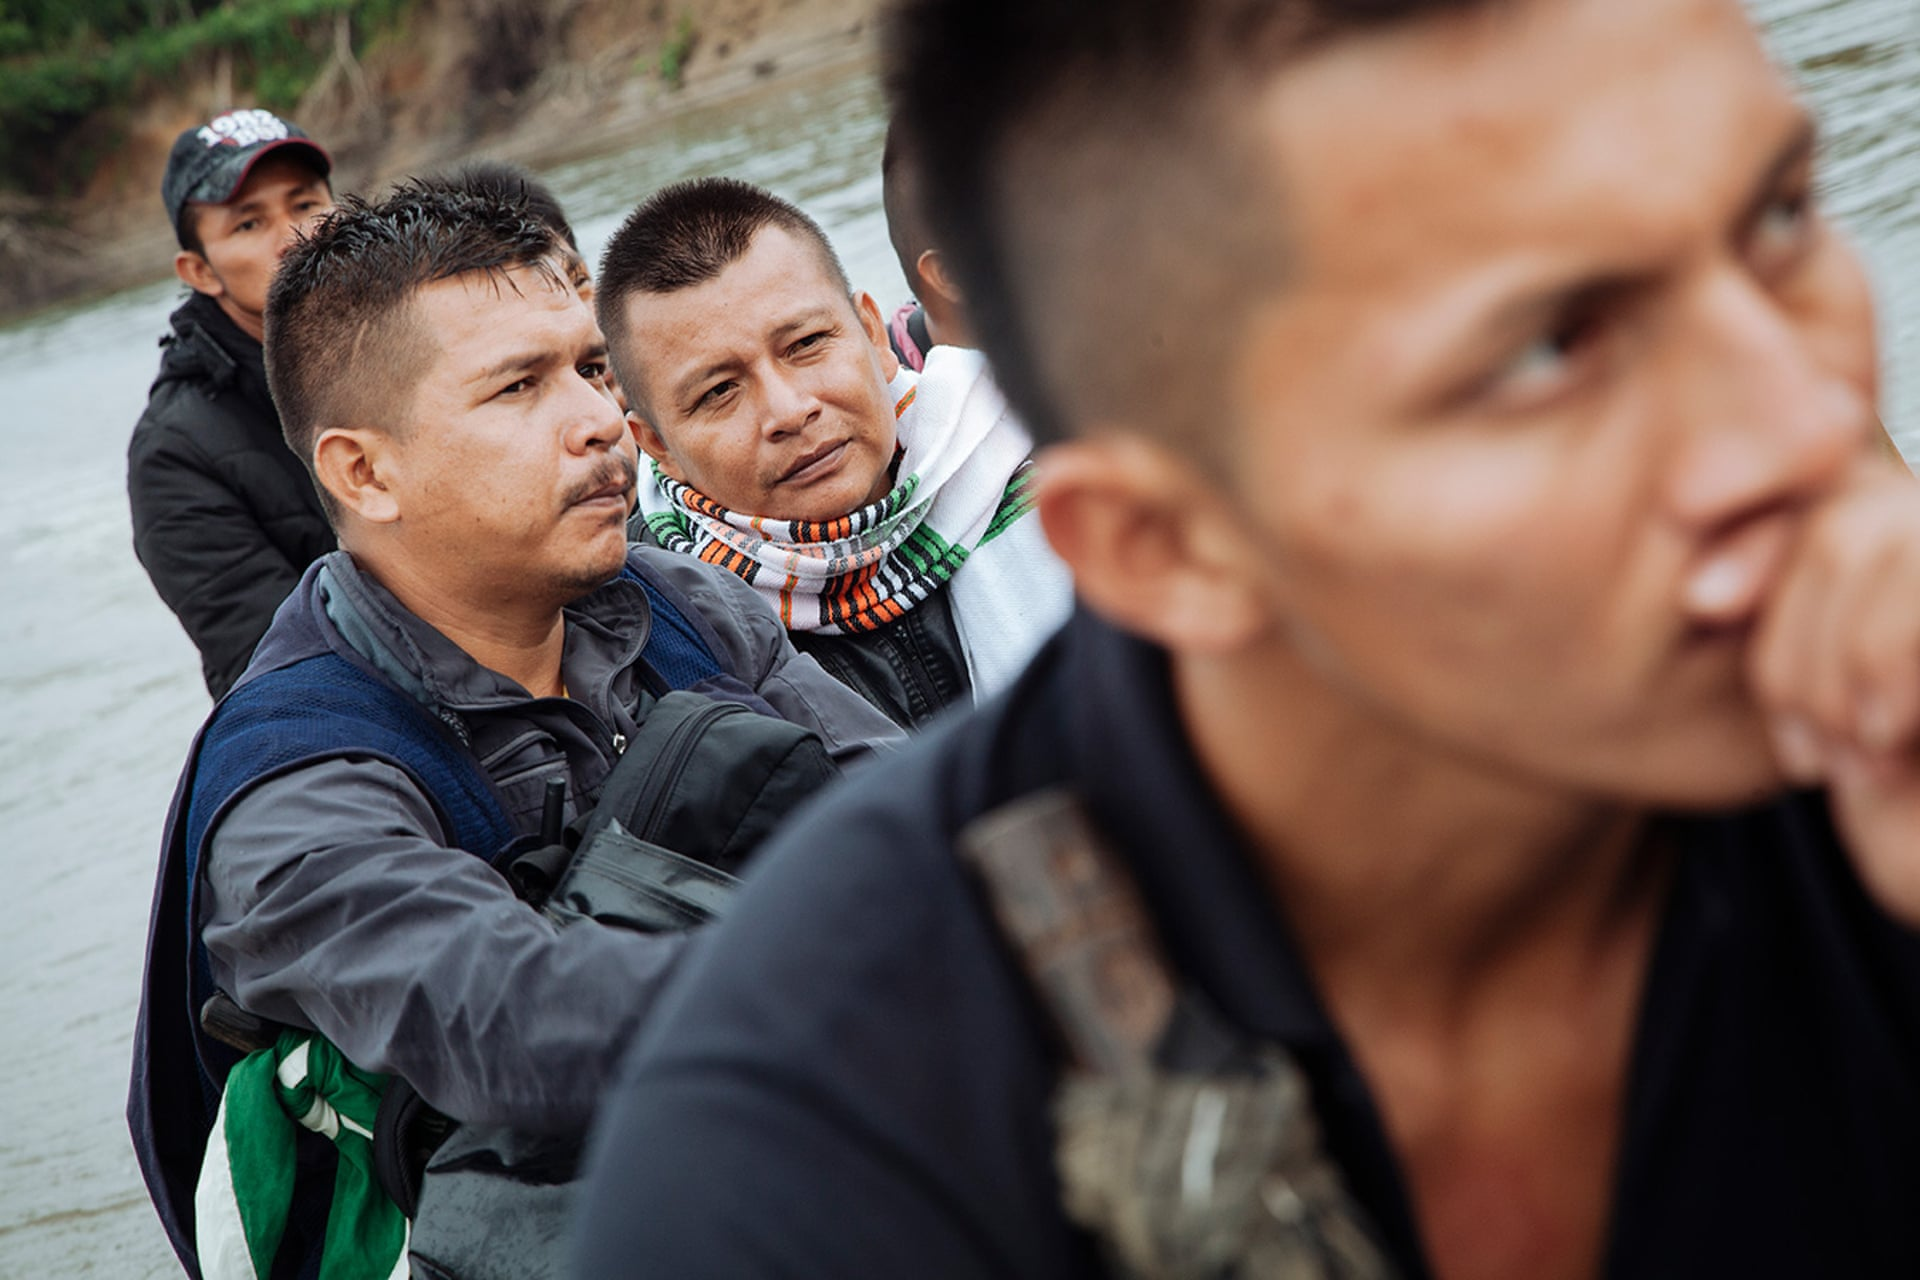 Mario, Sandro and members of Buenavista's guardia travelling by motorised canoe on the River Putumayo. Photograph: Mateo Barriga Salazar